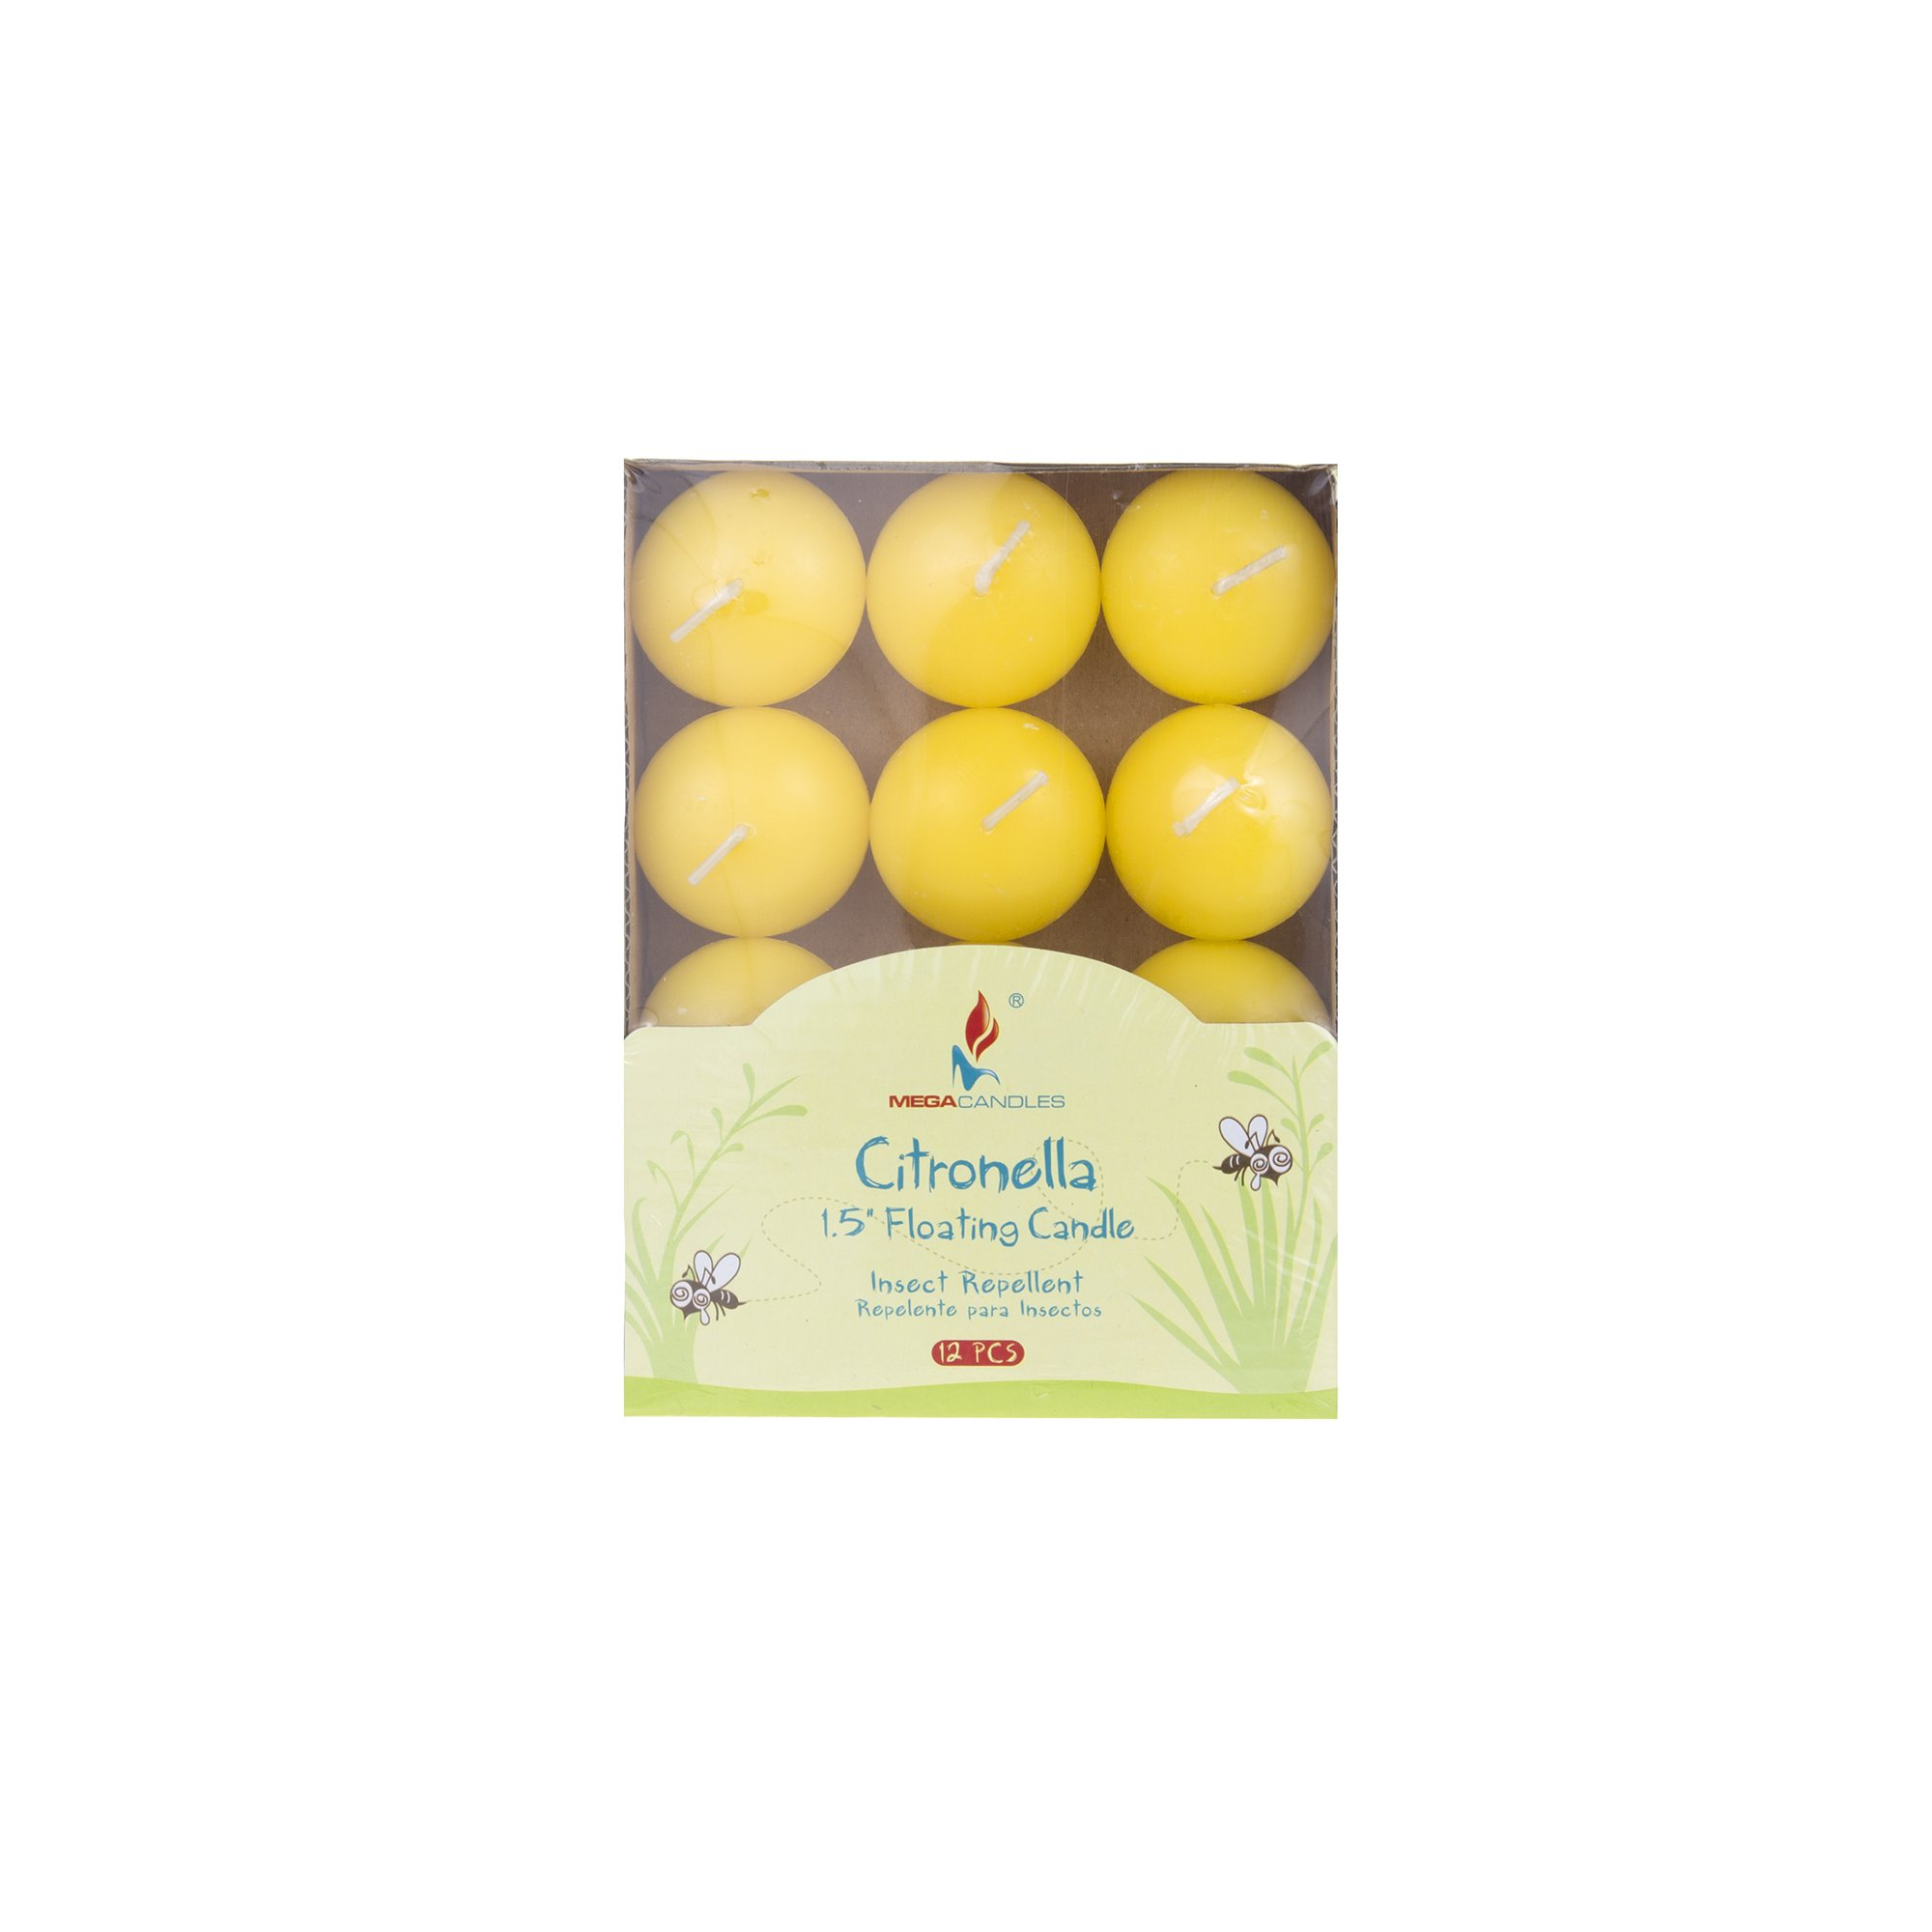 Mega Candles 24 pcs Citronella Floating Disc Candle | Hand Poured Paraffin Wax Candles 1.5'' Diameter | Bug Repellent Candles For Indoor And Outdoor Use | Everyday Candles For Mosquitoes And Insects